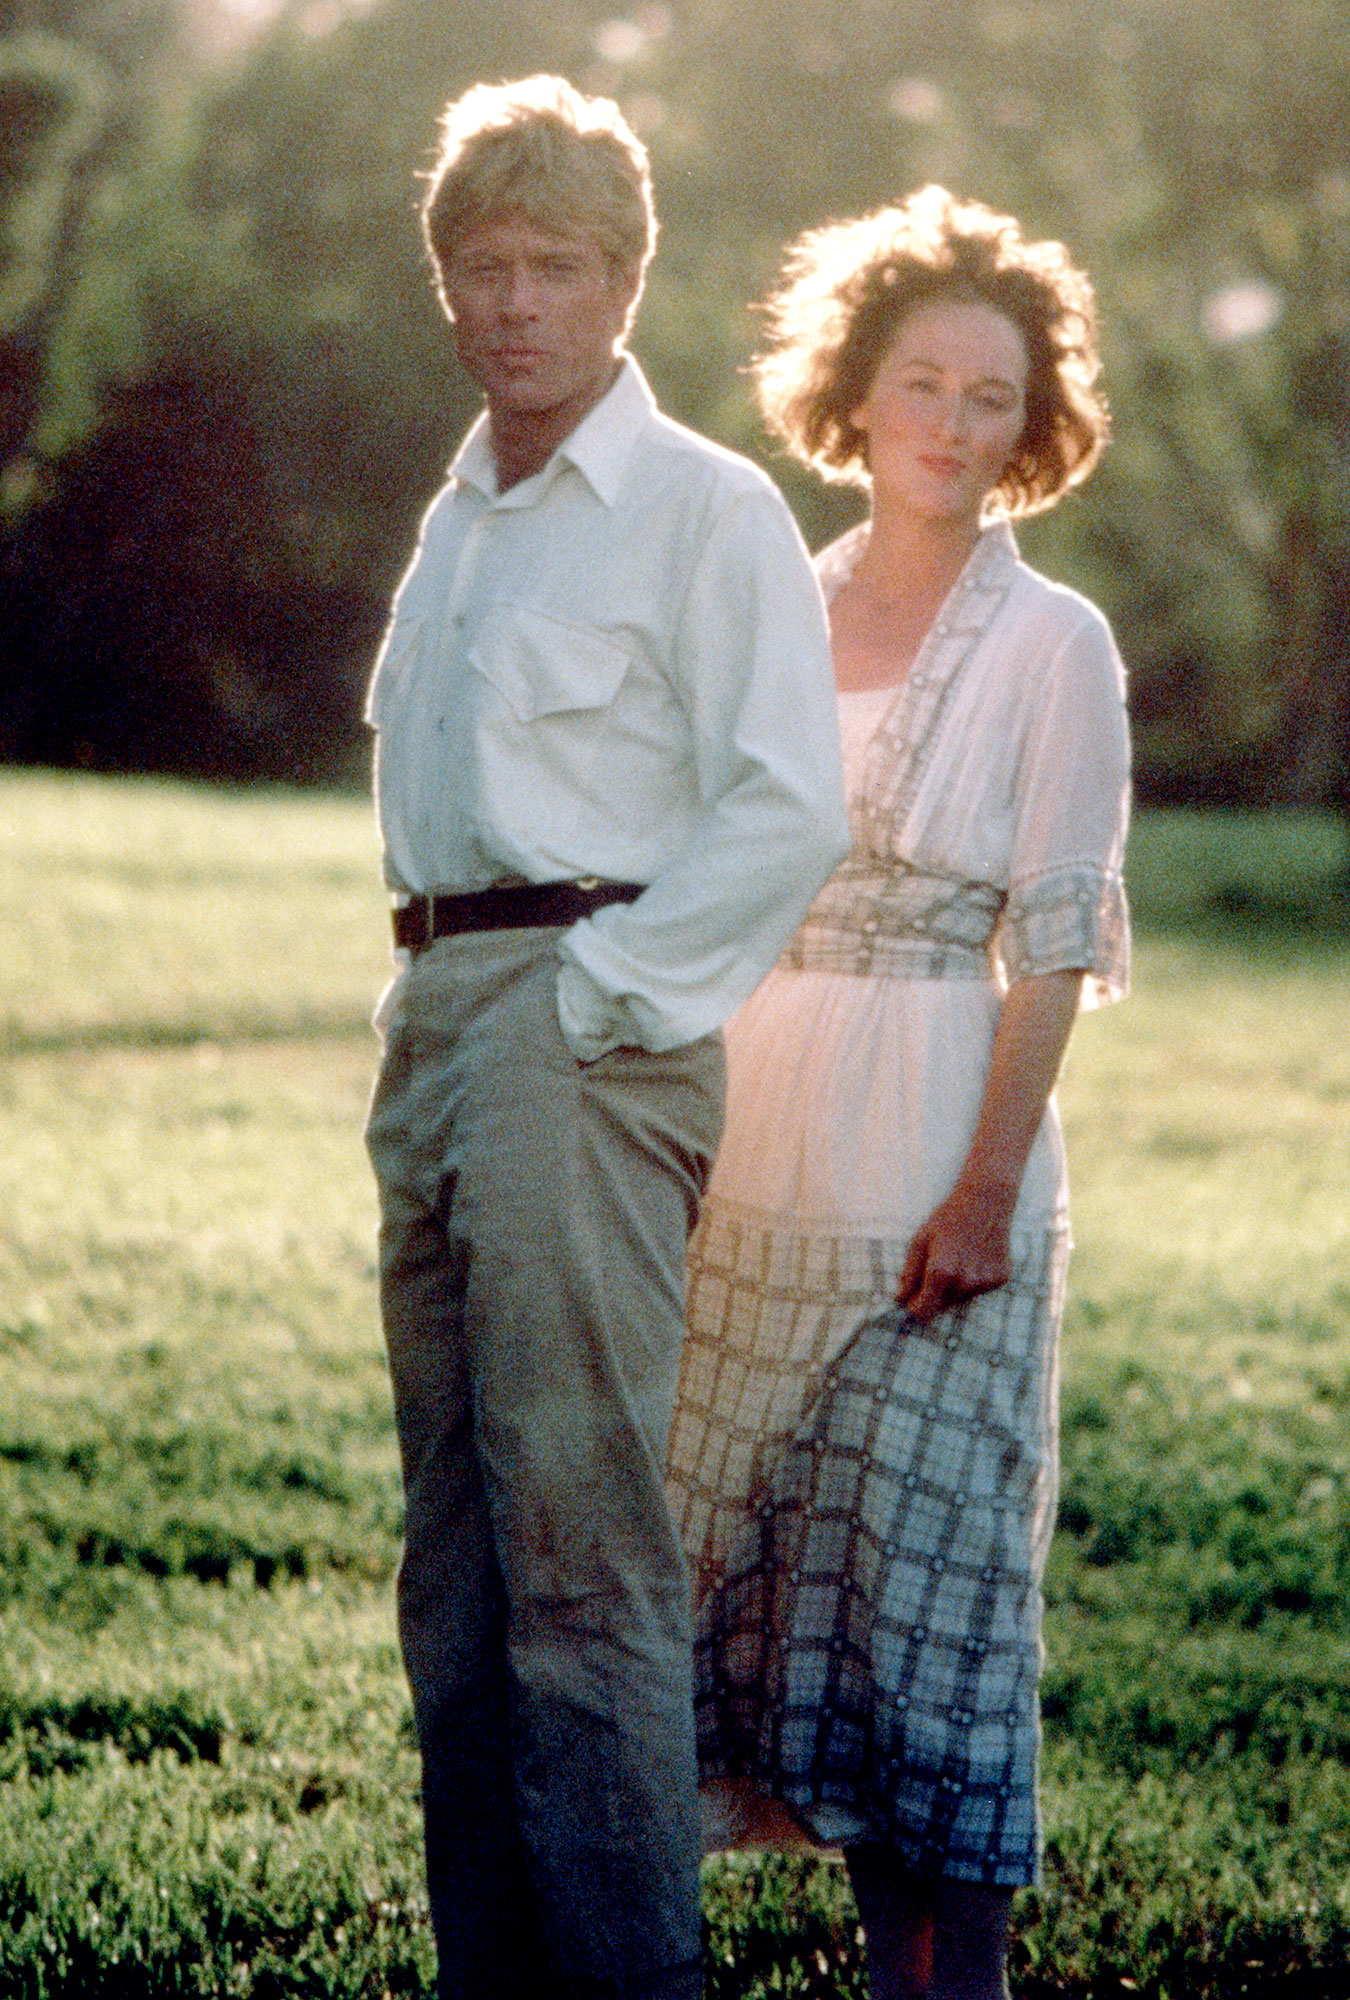 Robert Redford and Meryl Streep Out of Africa - The acclaimed actress perfected yet another foreign accent alongside Robert Redford in 1985's Out of Africa. She sported brunette locks for the role and captivated viewers onscreen.